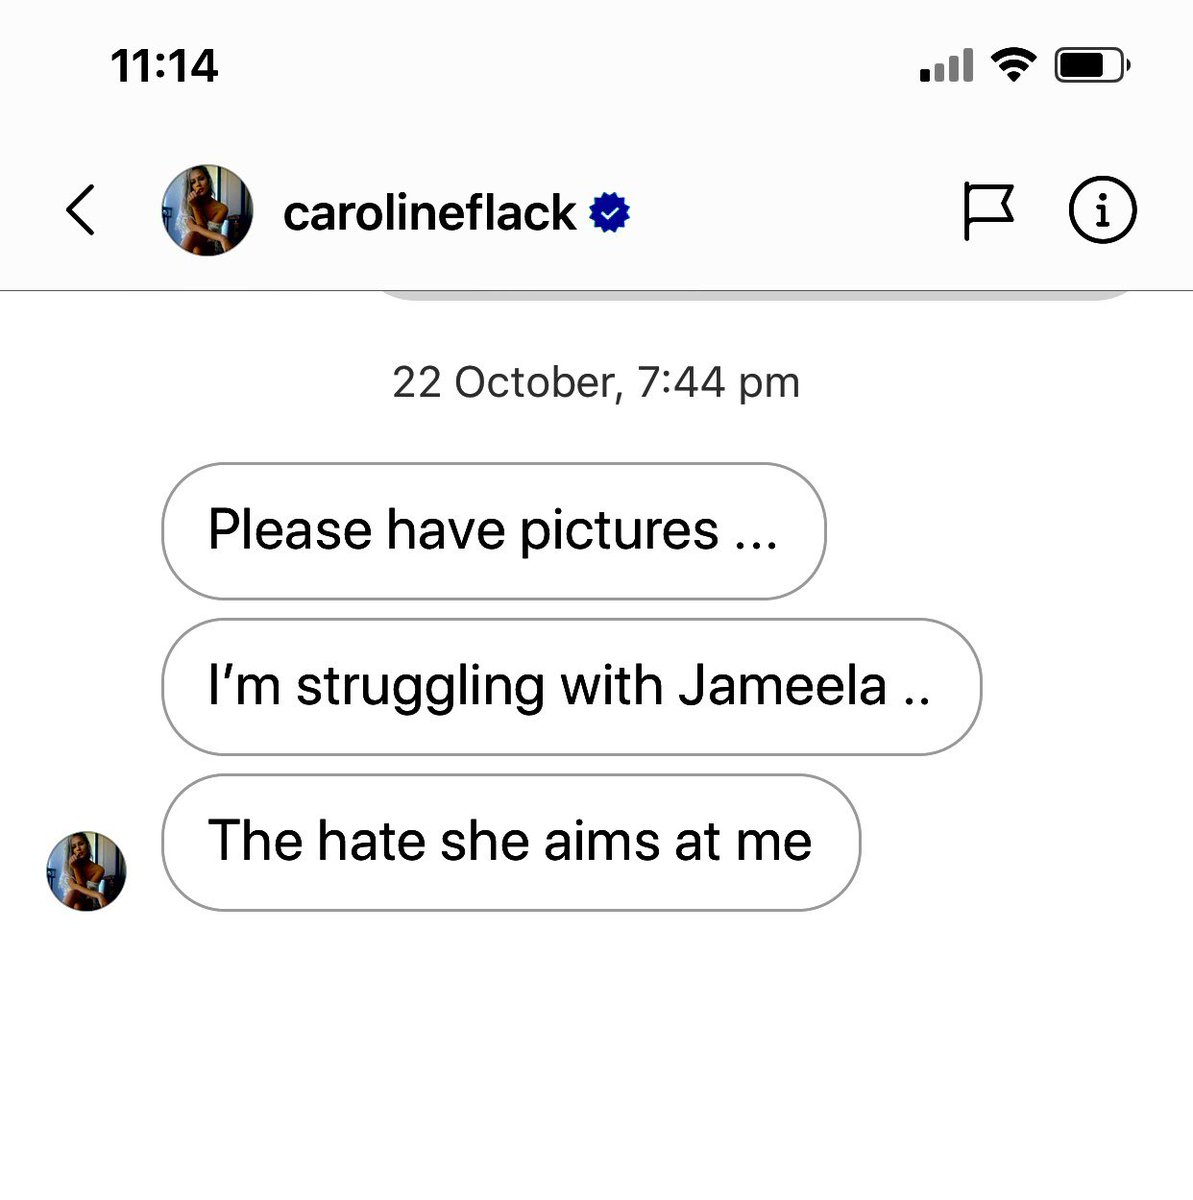 Jameela Jamil is having a lot to say about online harassment, so in the interests of balance, here is a message Caroline Flack sent me last October after the same Jameela Jamil led an online pile-on against her regarding a new TV show she was doing.